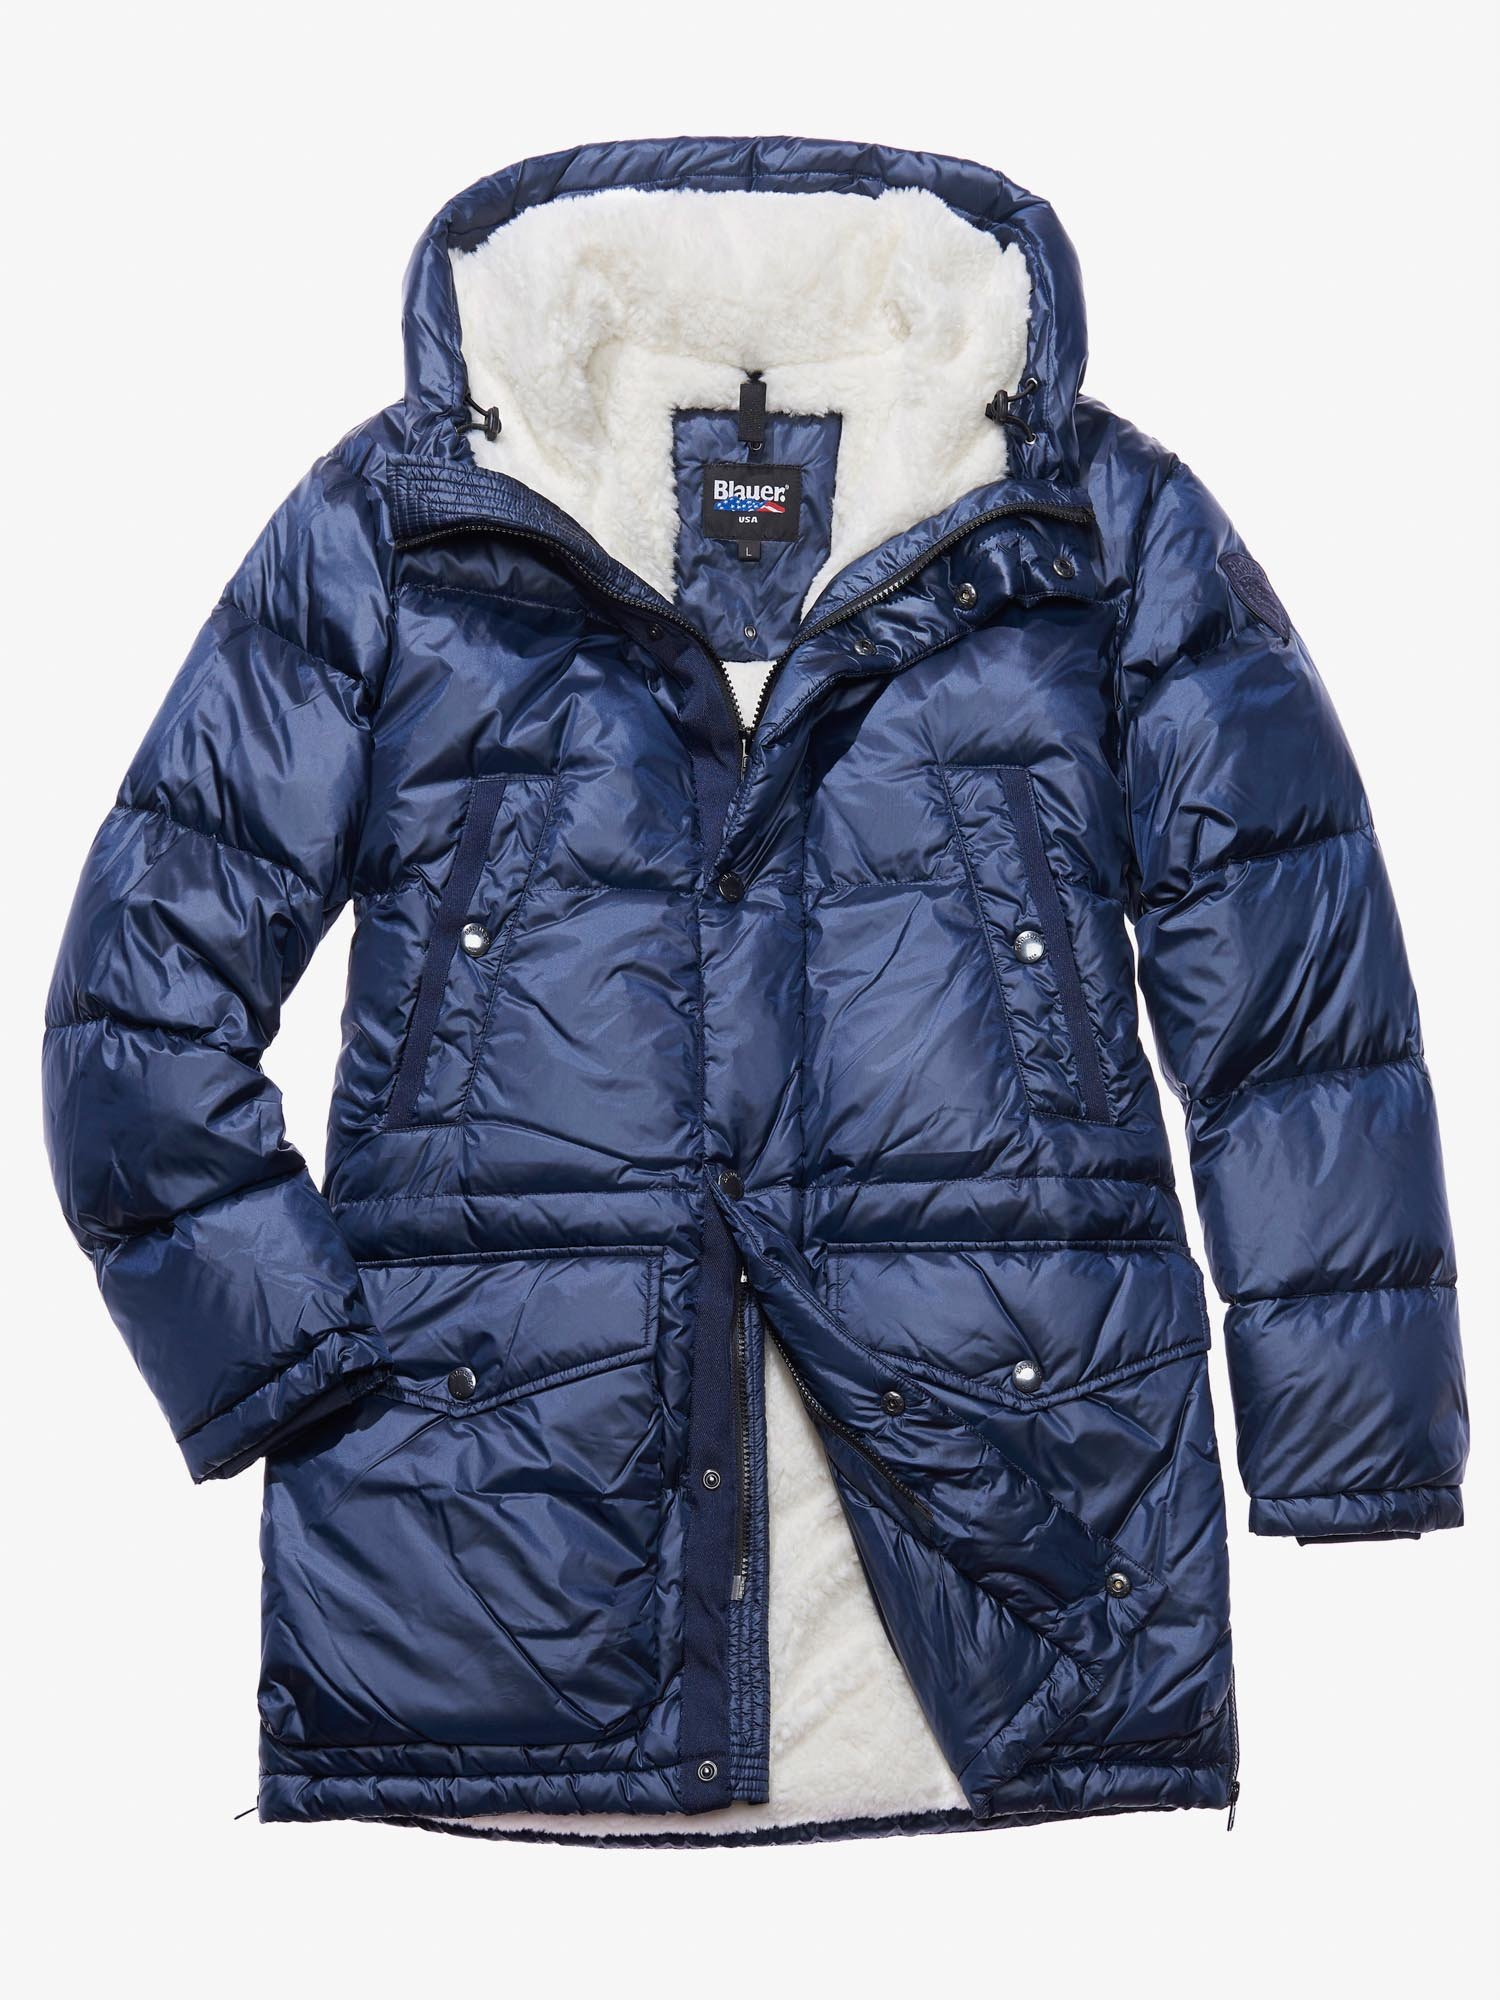 LEONARDO DOWN COAT WITH FAUX FUR LINING - Blauer